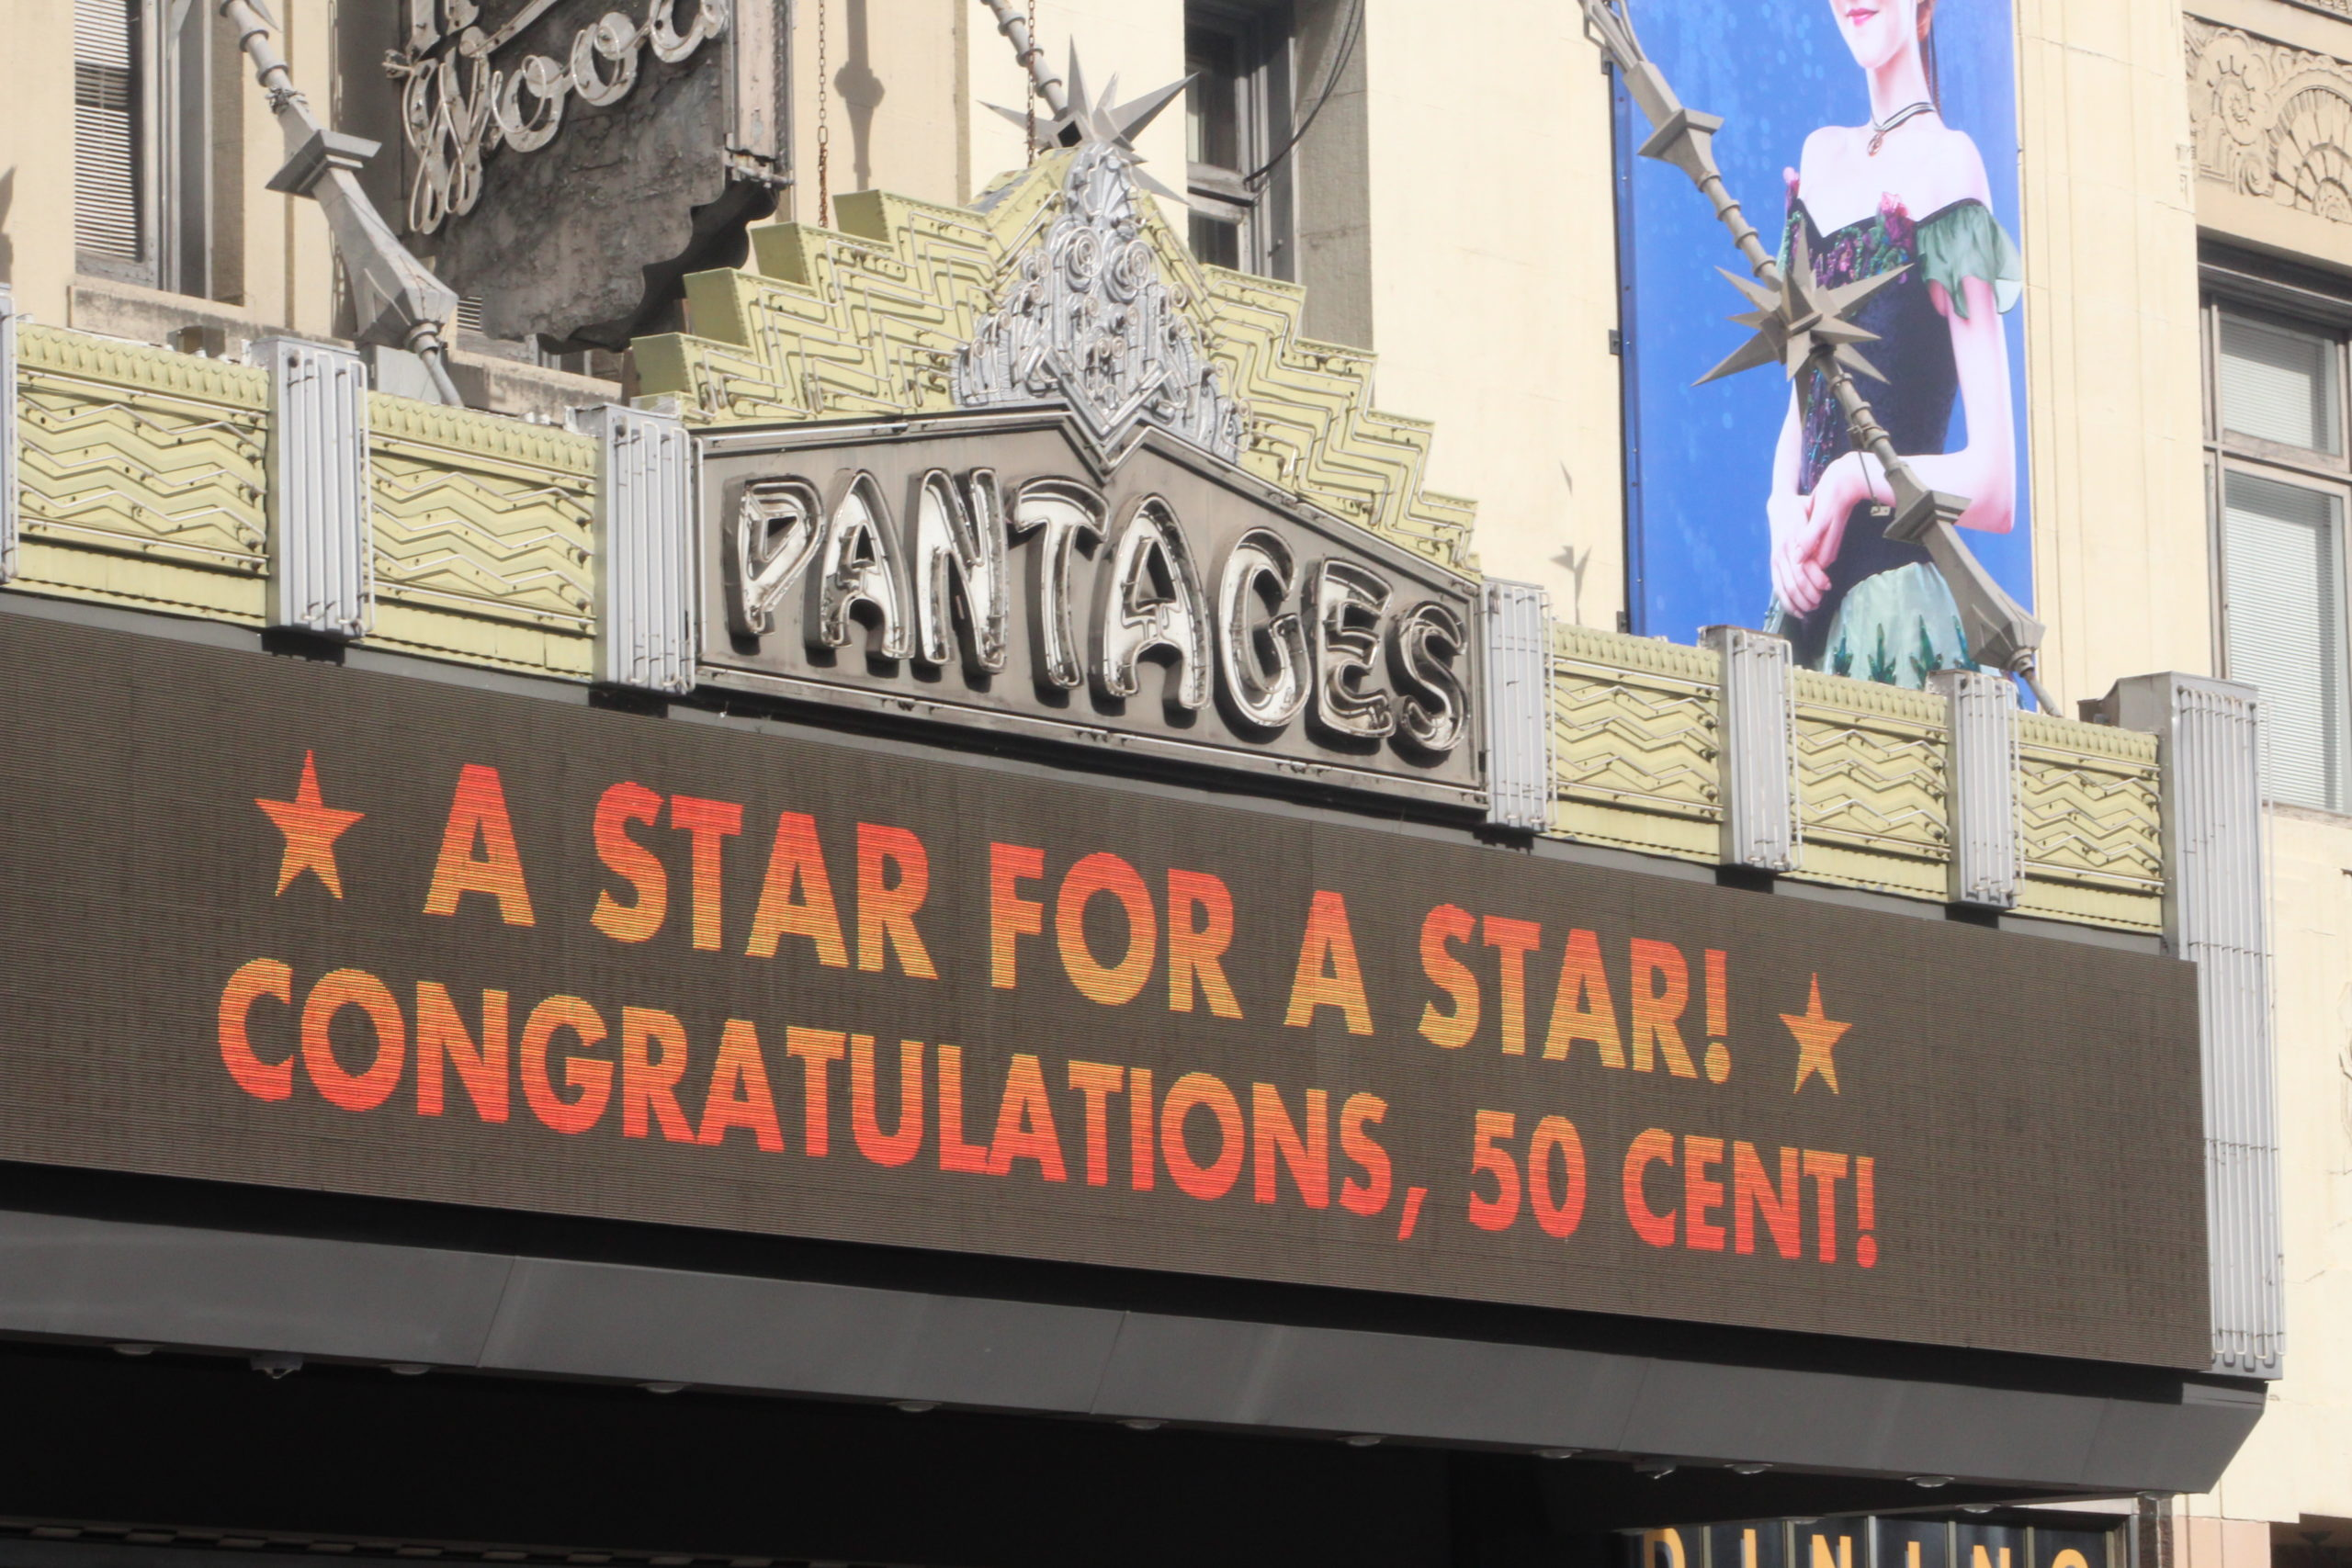 50 Cent's Pantages Marquee